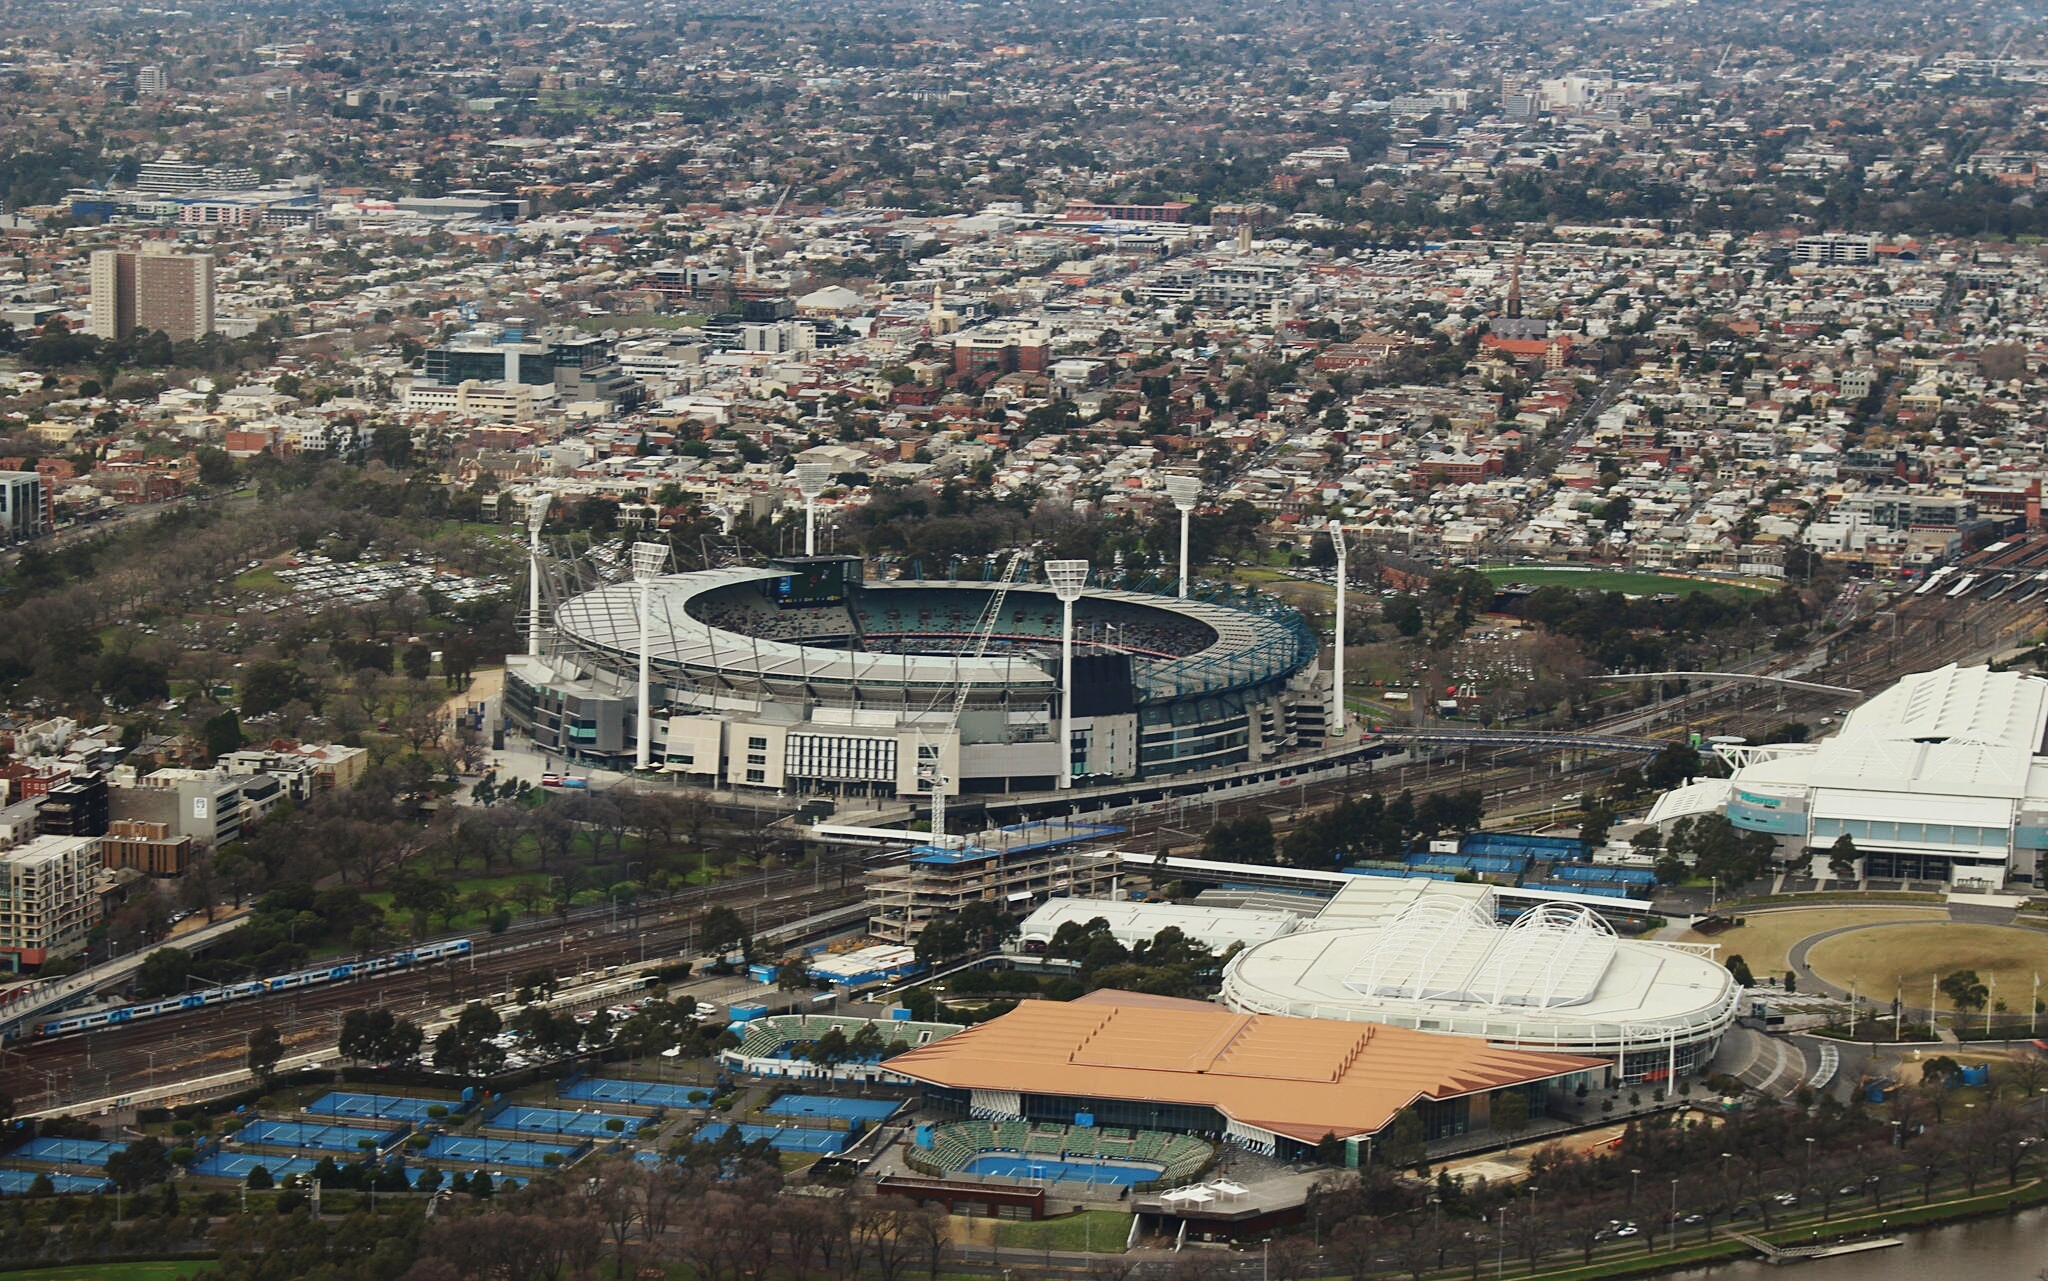 Article image for 'Safe to occupy': Planning minister says MCG safe despite arson fears